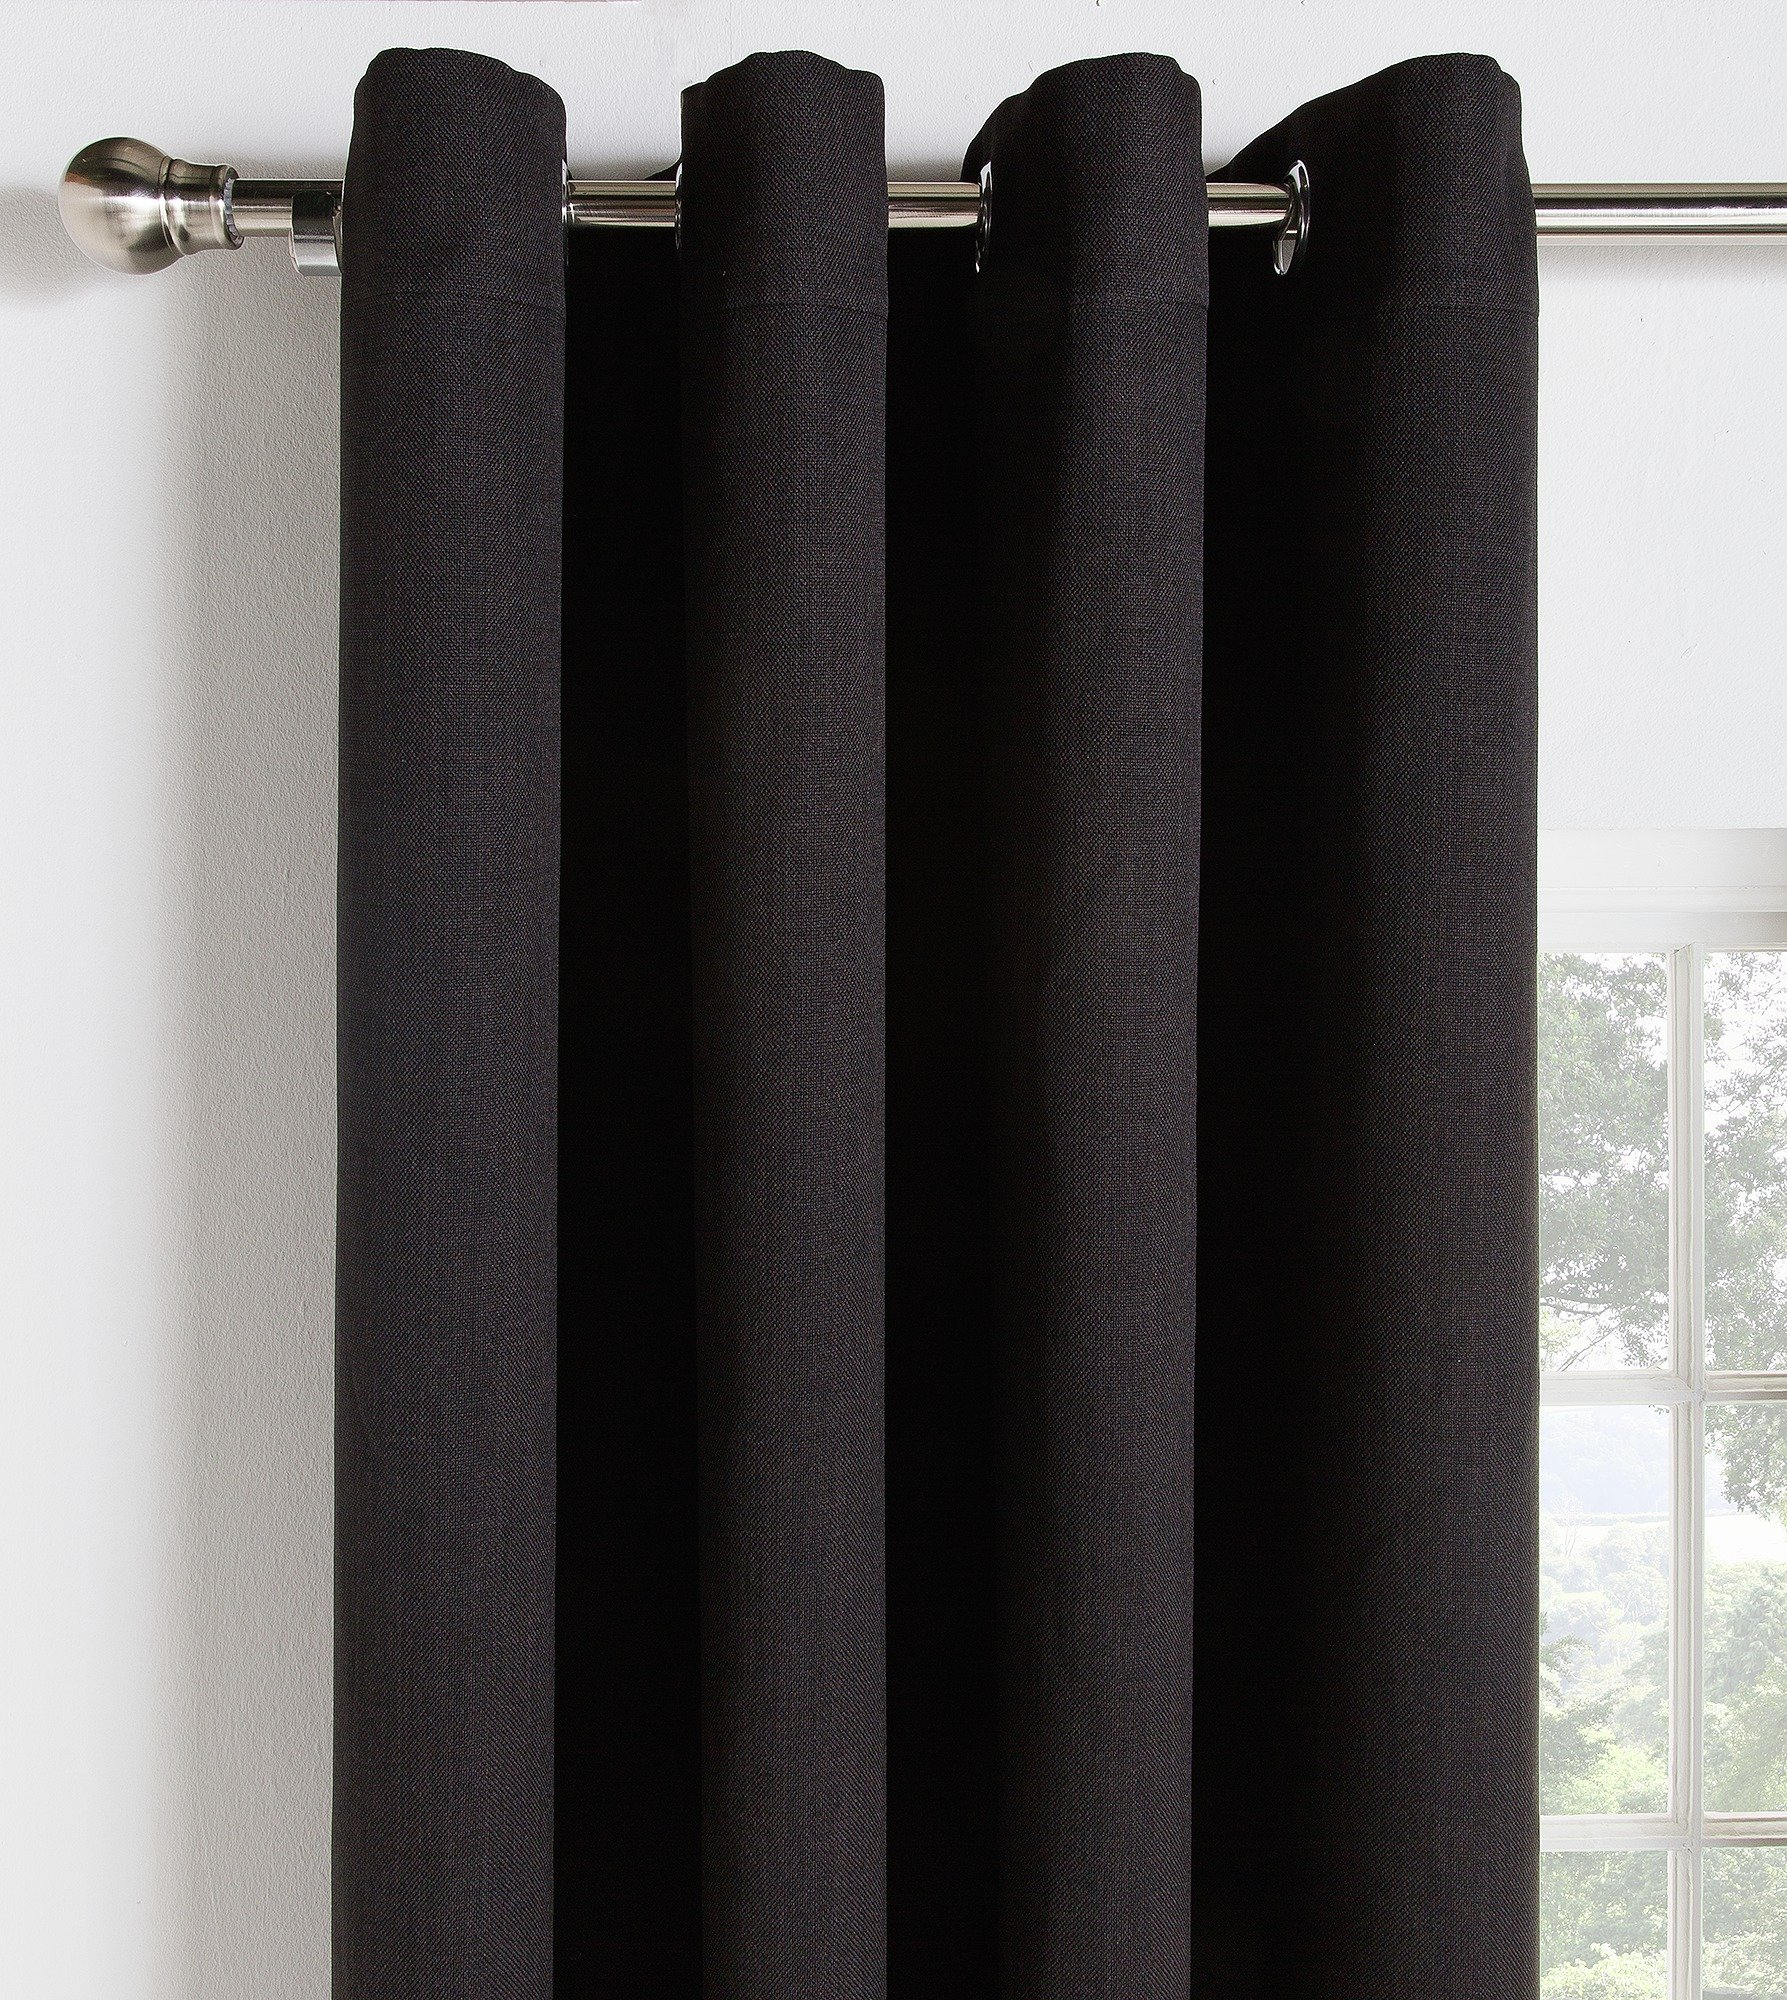 Collection Linen Look Blackout Curtains - 117x183cm - Black